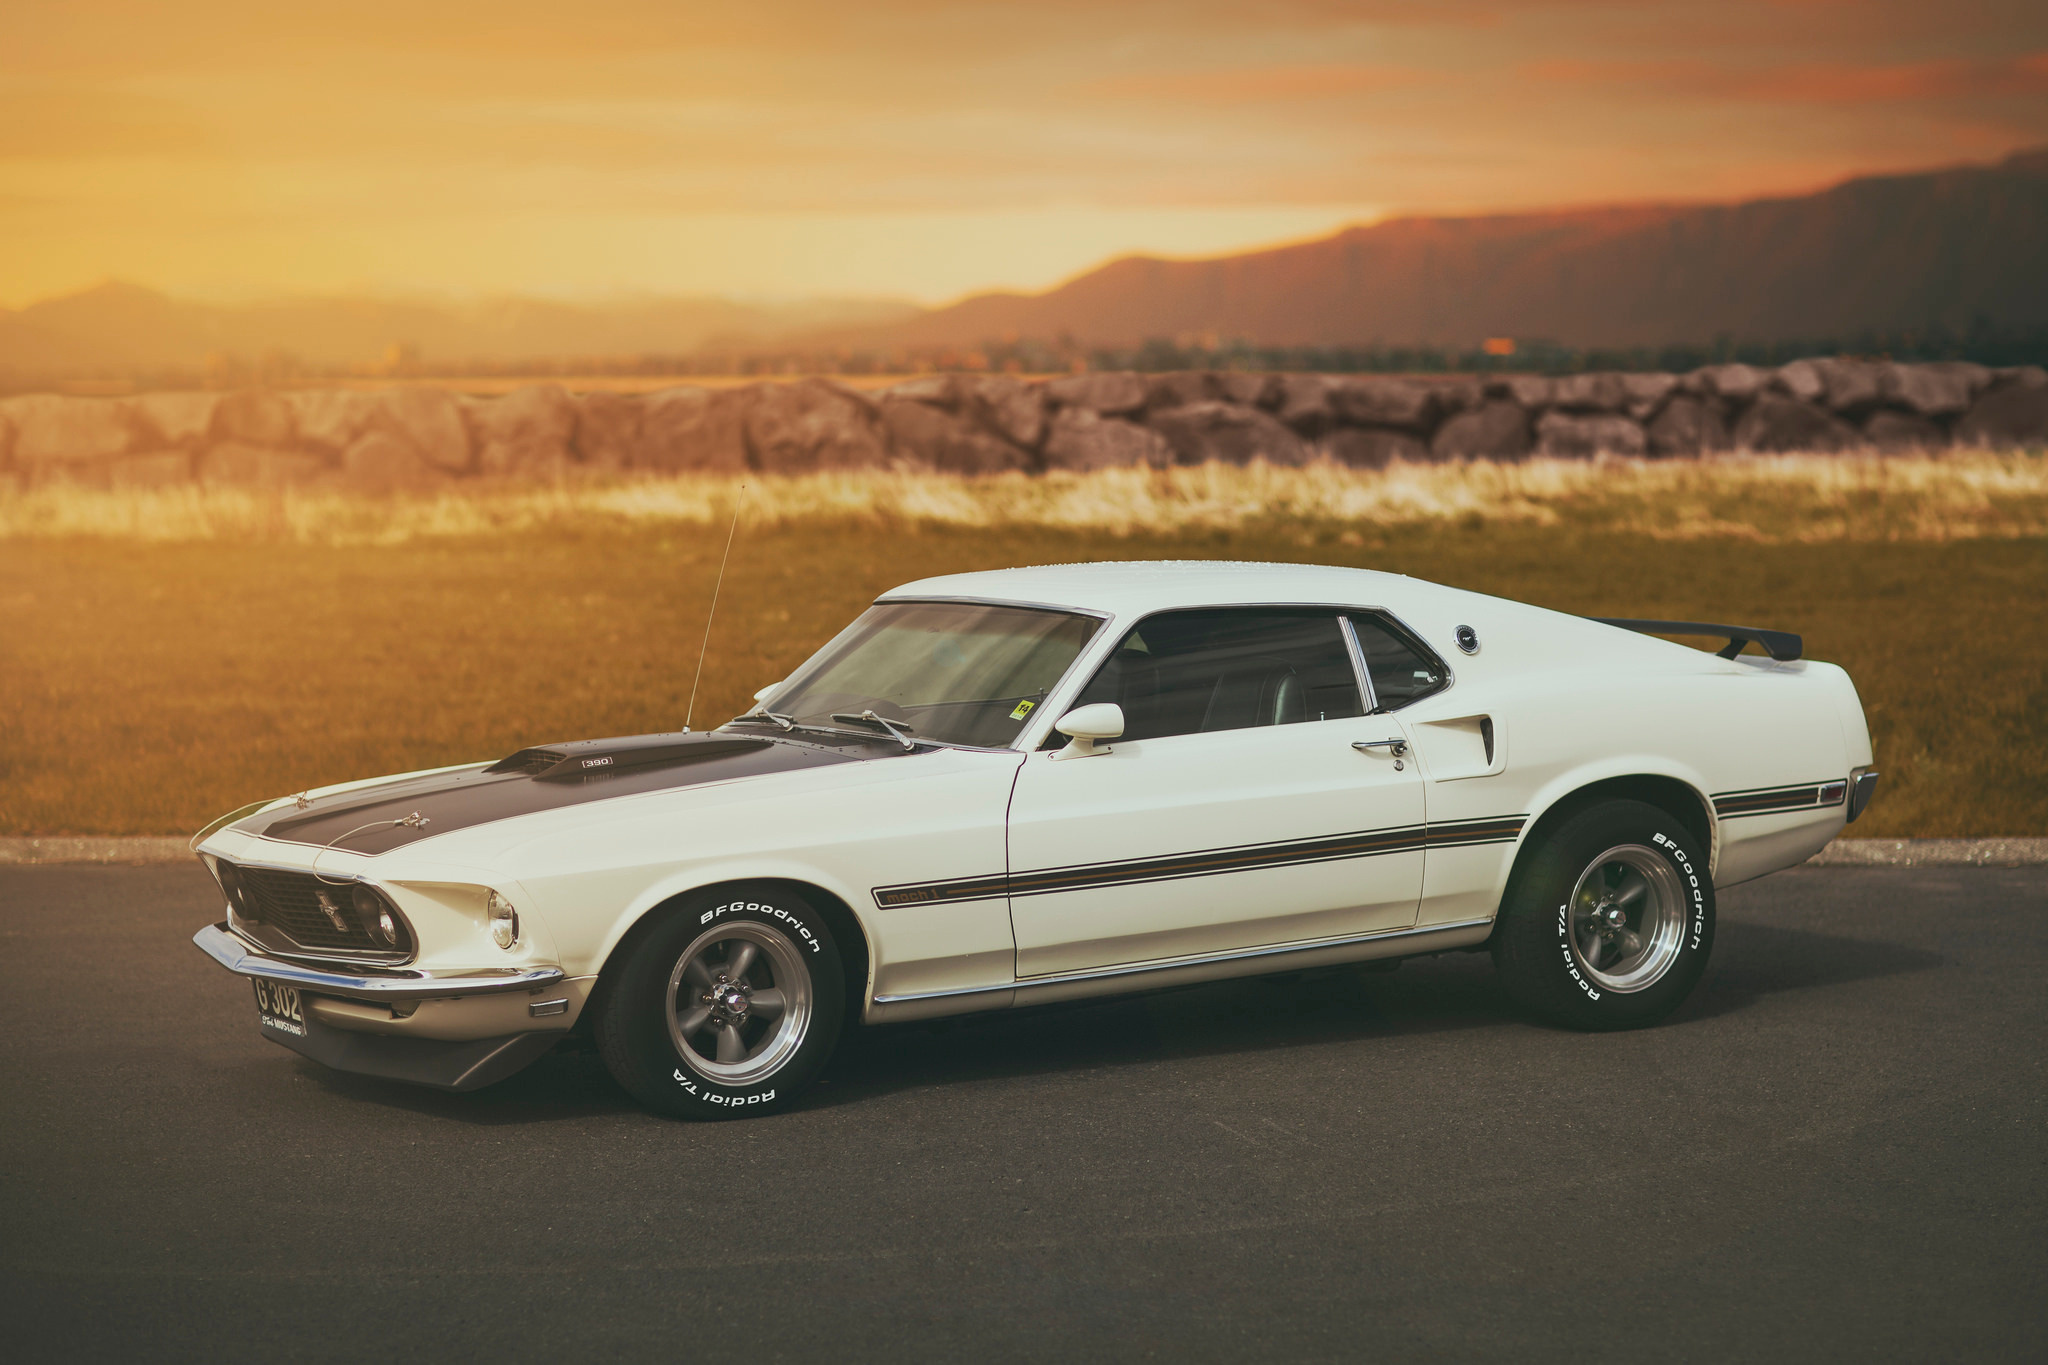 100444 download wallpaper Cars, Ford, Mach 1, Mustang screensavers and pictures for free